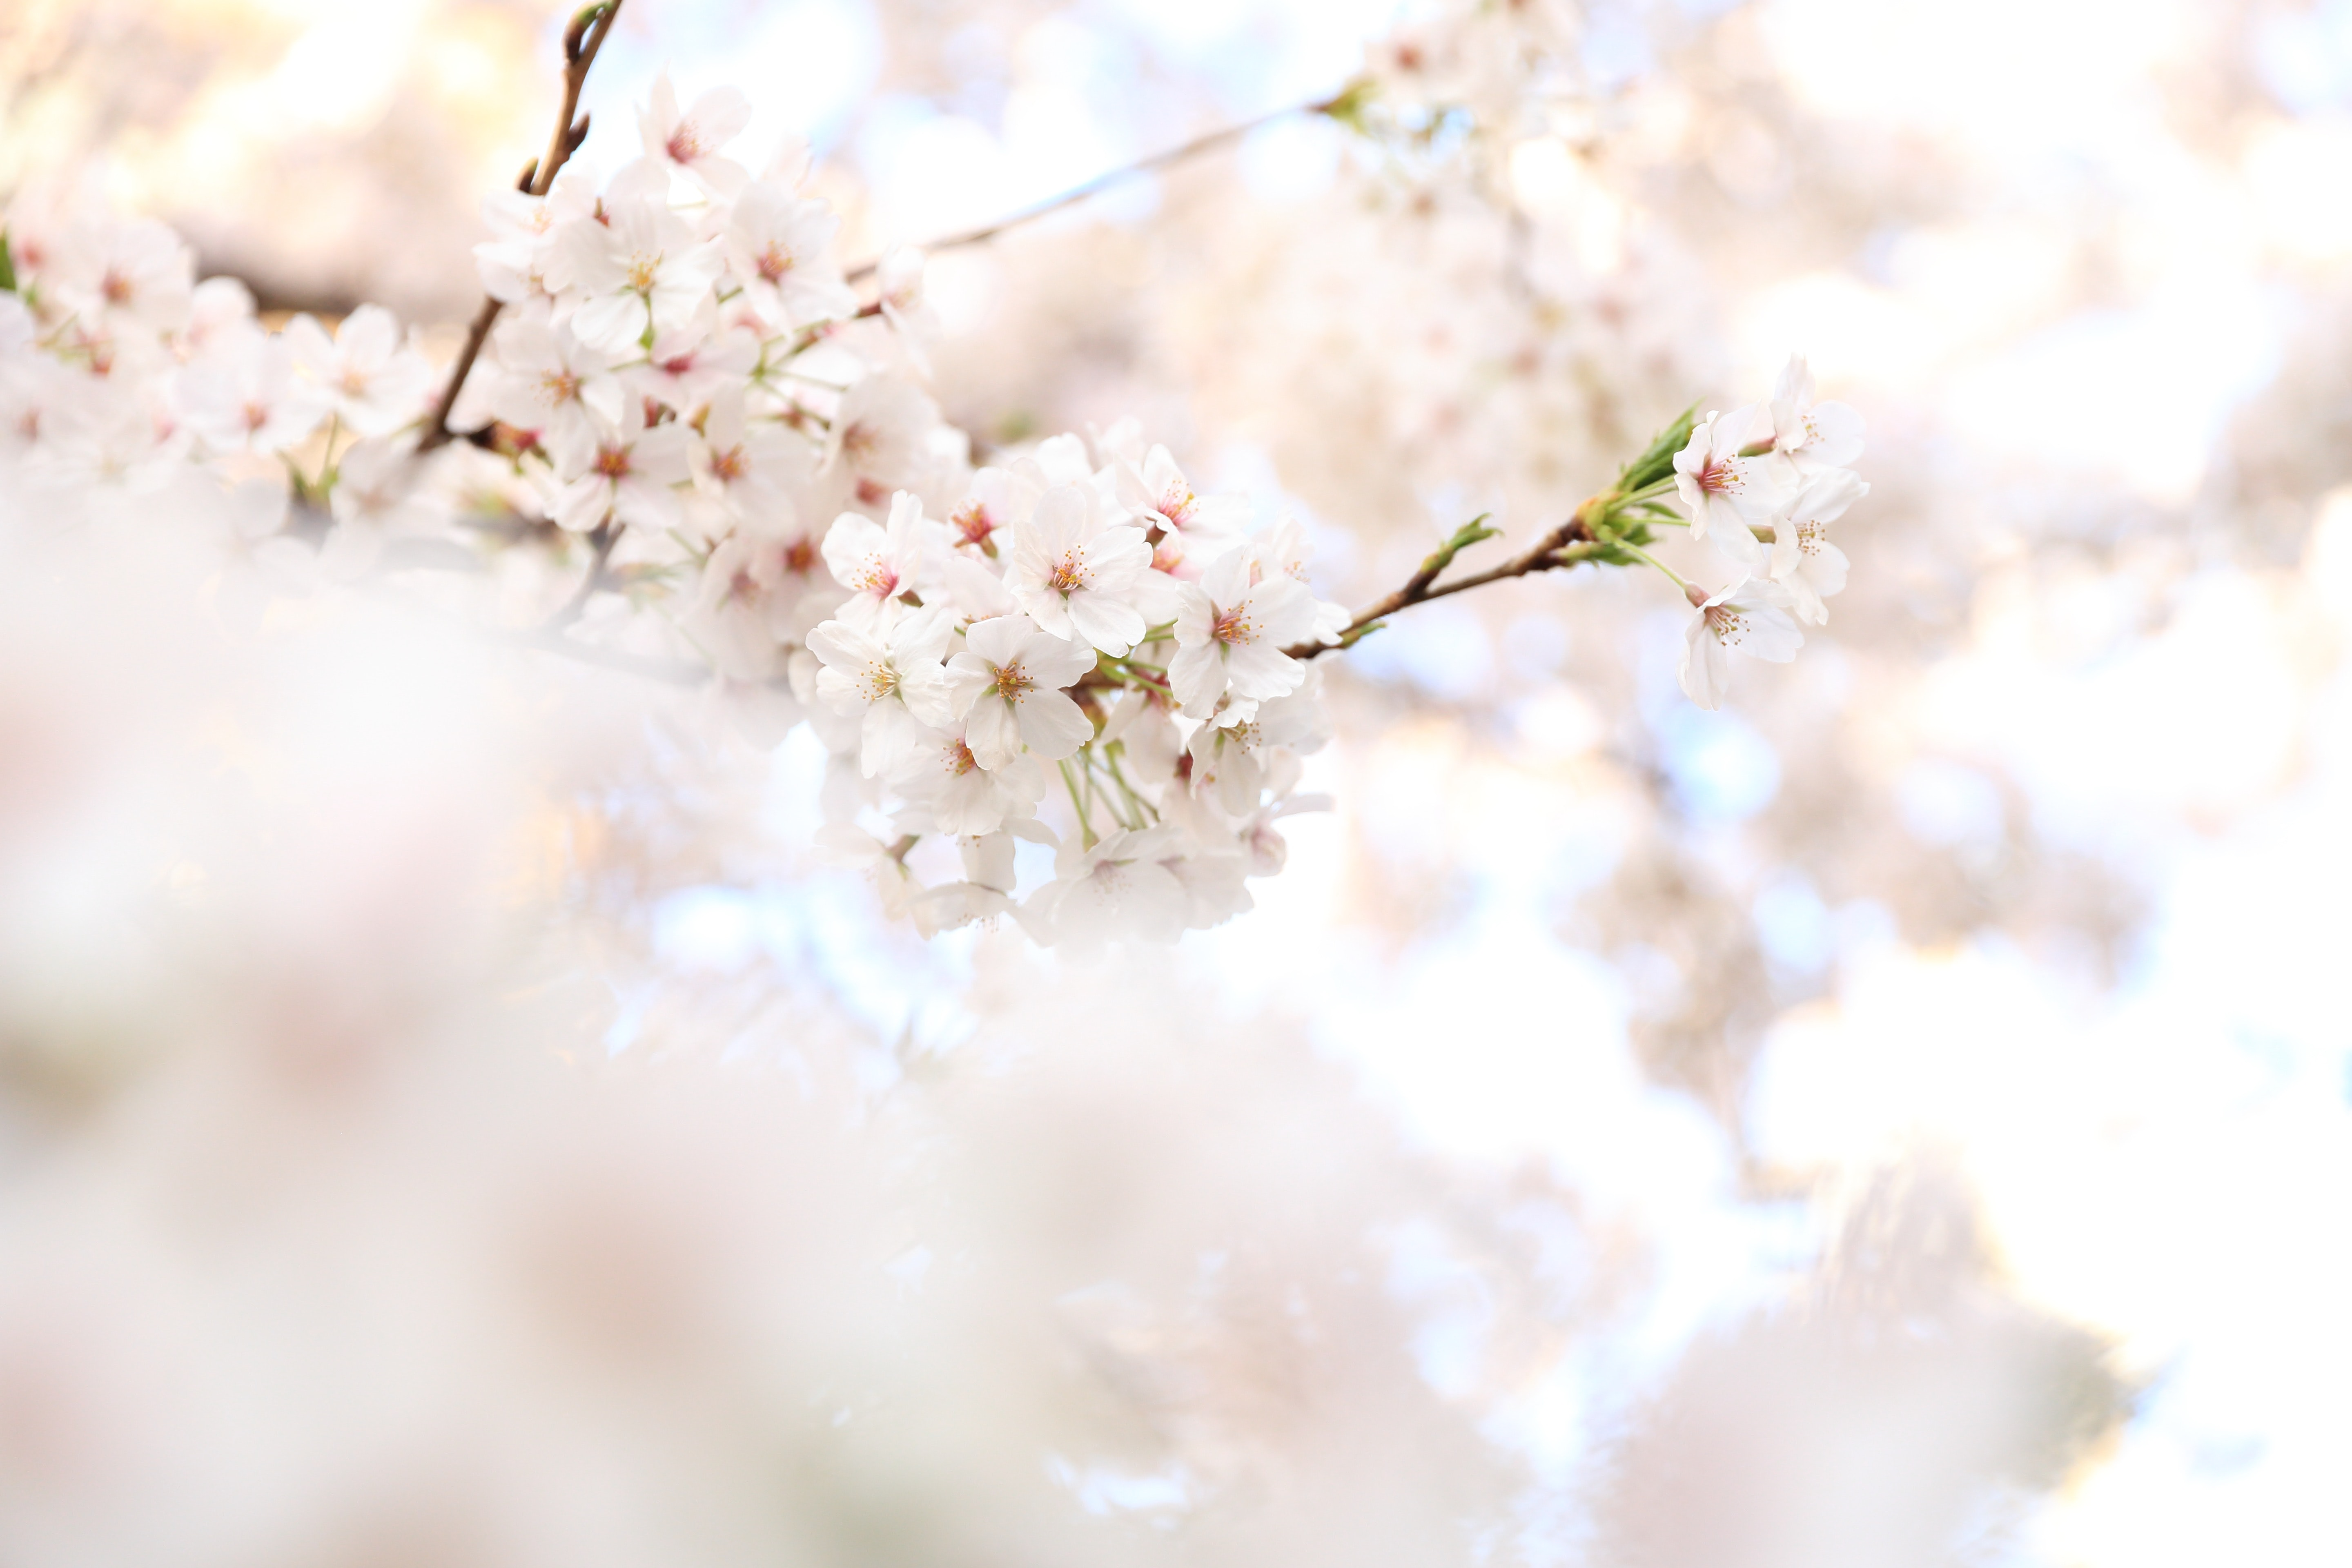 White pink floral blossom on branch in Spring